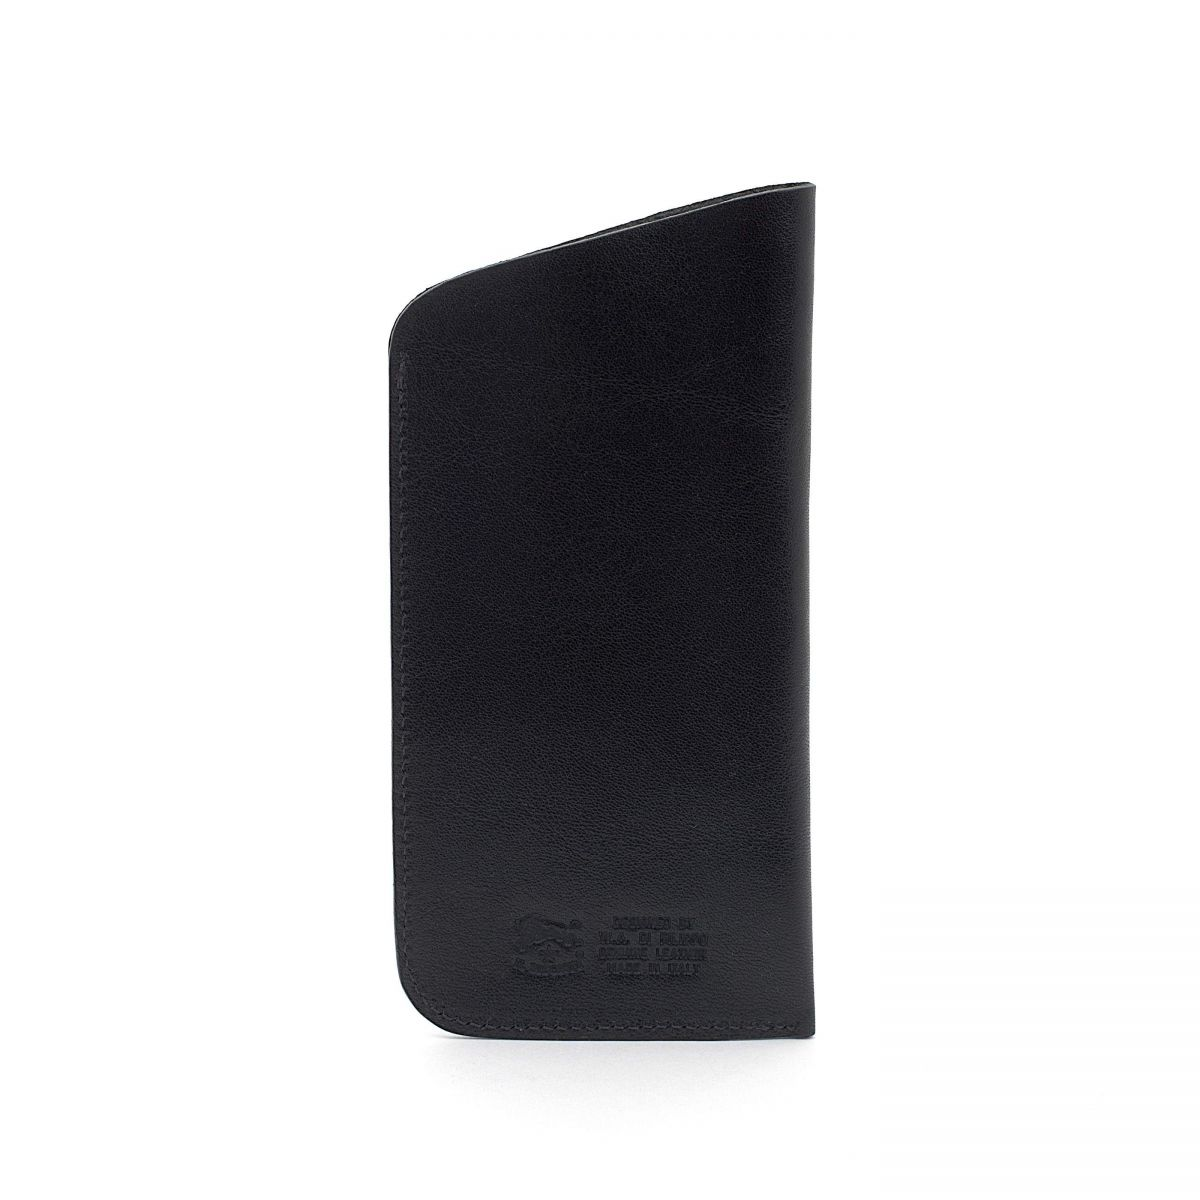 Case  in Cowhide Double Leather SCA006 color Black | Details